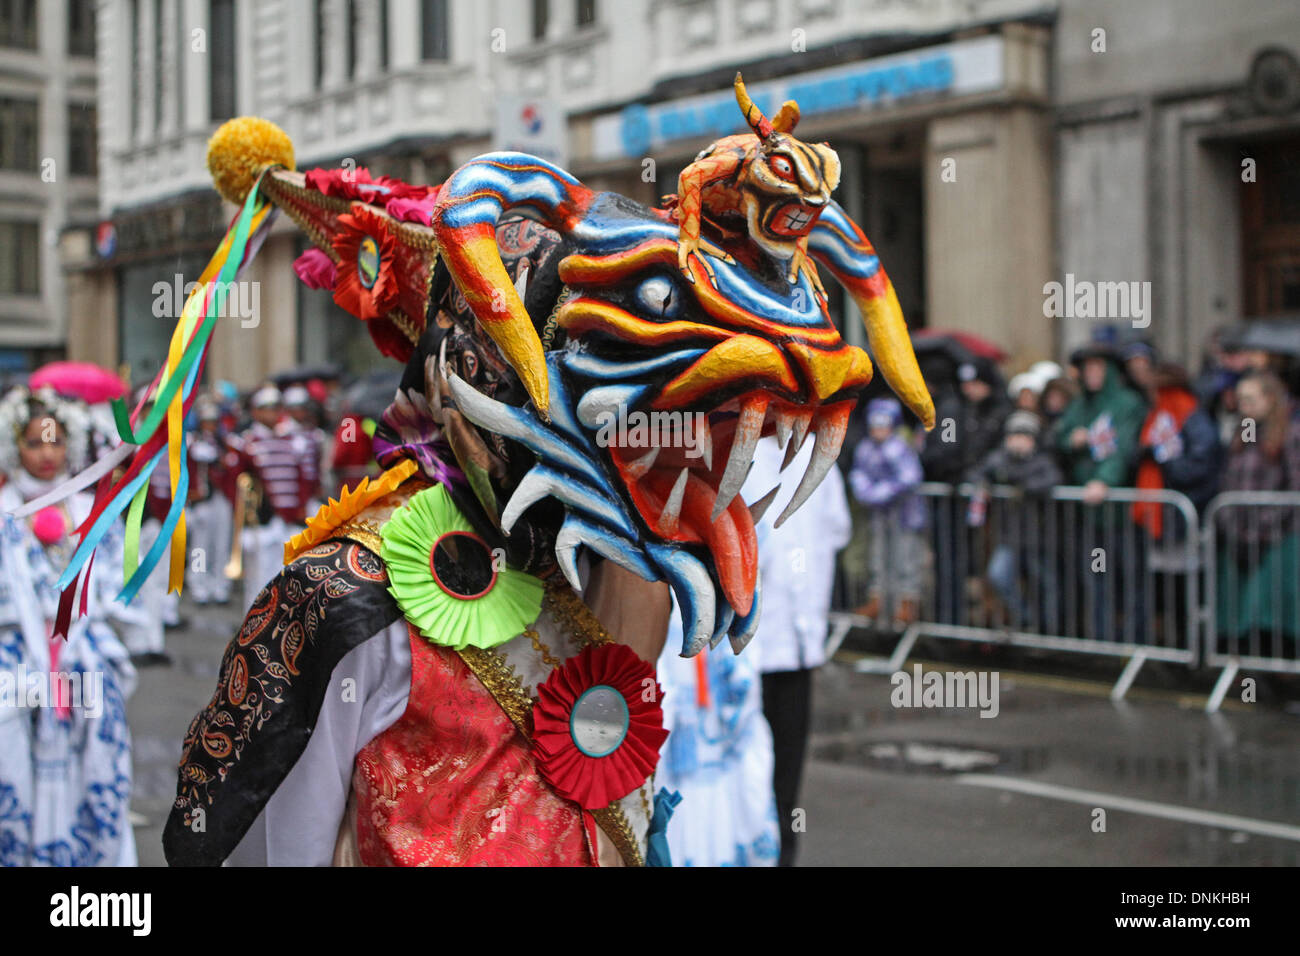 London,UK,1st January 2014,A colourful mask at the London's New Year's Day Parade 2014 Credit: Keith Larby/Alamy Live News - Stock Image